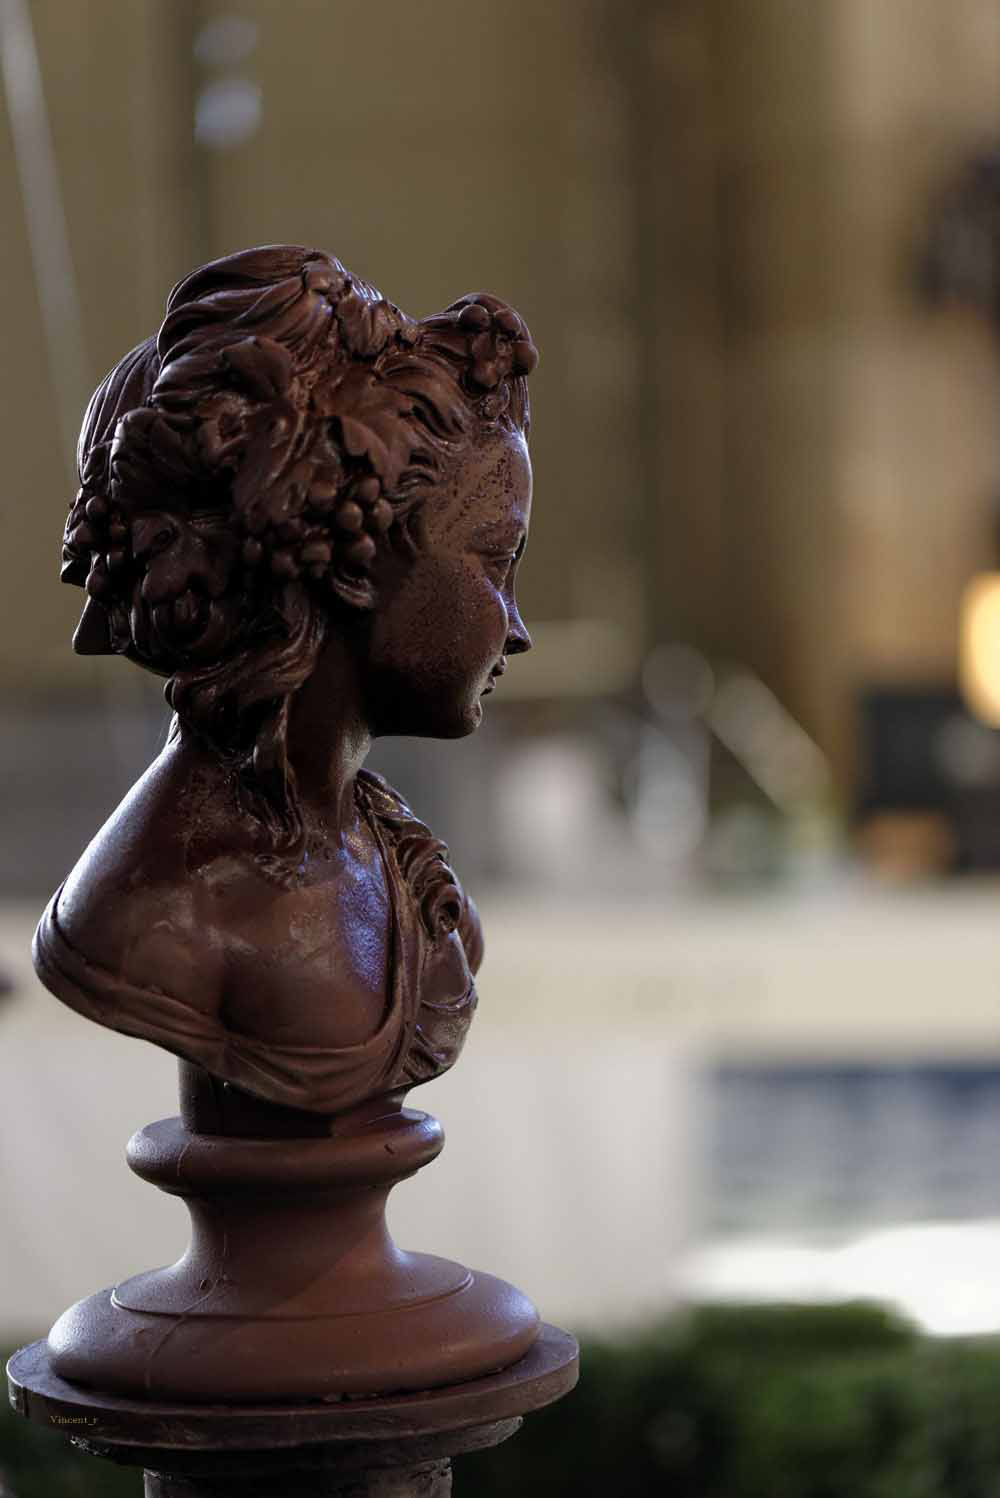 The eighth annual Chocolate Palace event this year brings some of France's most renowned chocolatiers to Chateau Vaux-le-Vicomte.